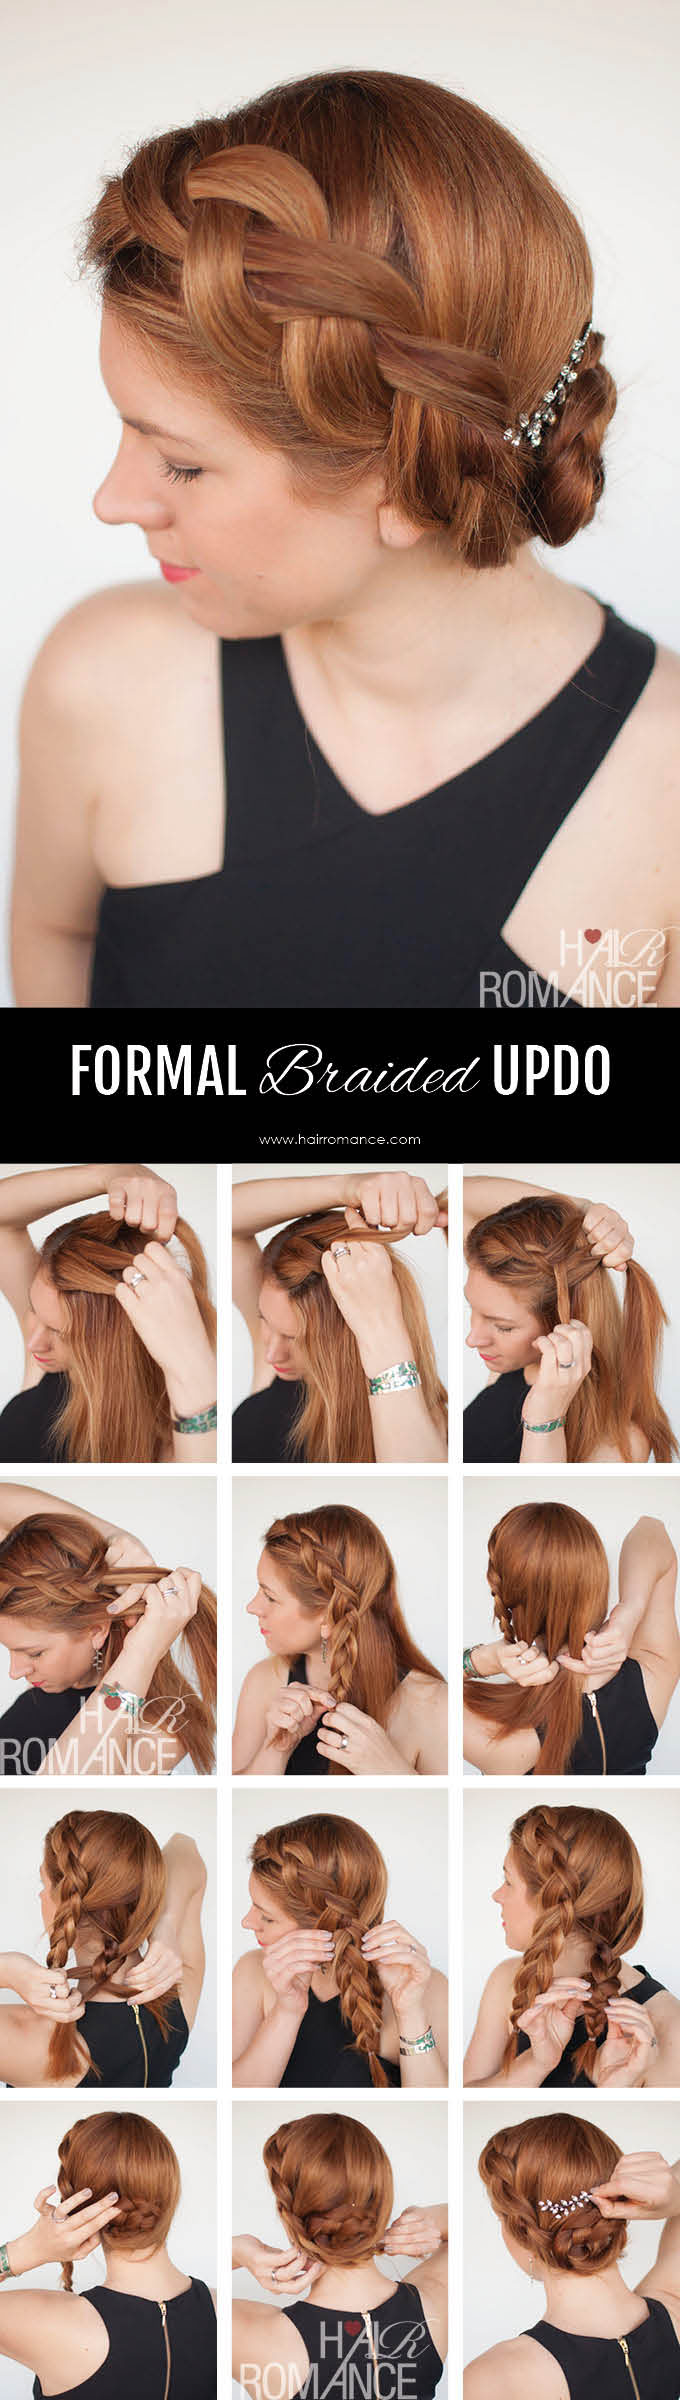 Hair Romance - Formal braided updo hairstyle tutorial